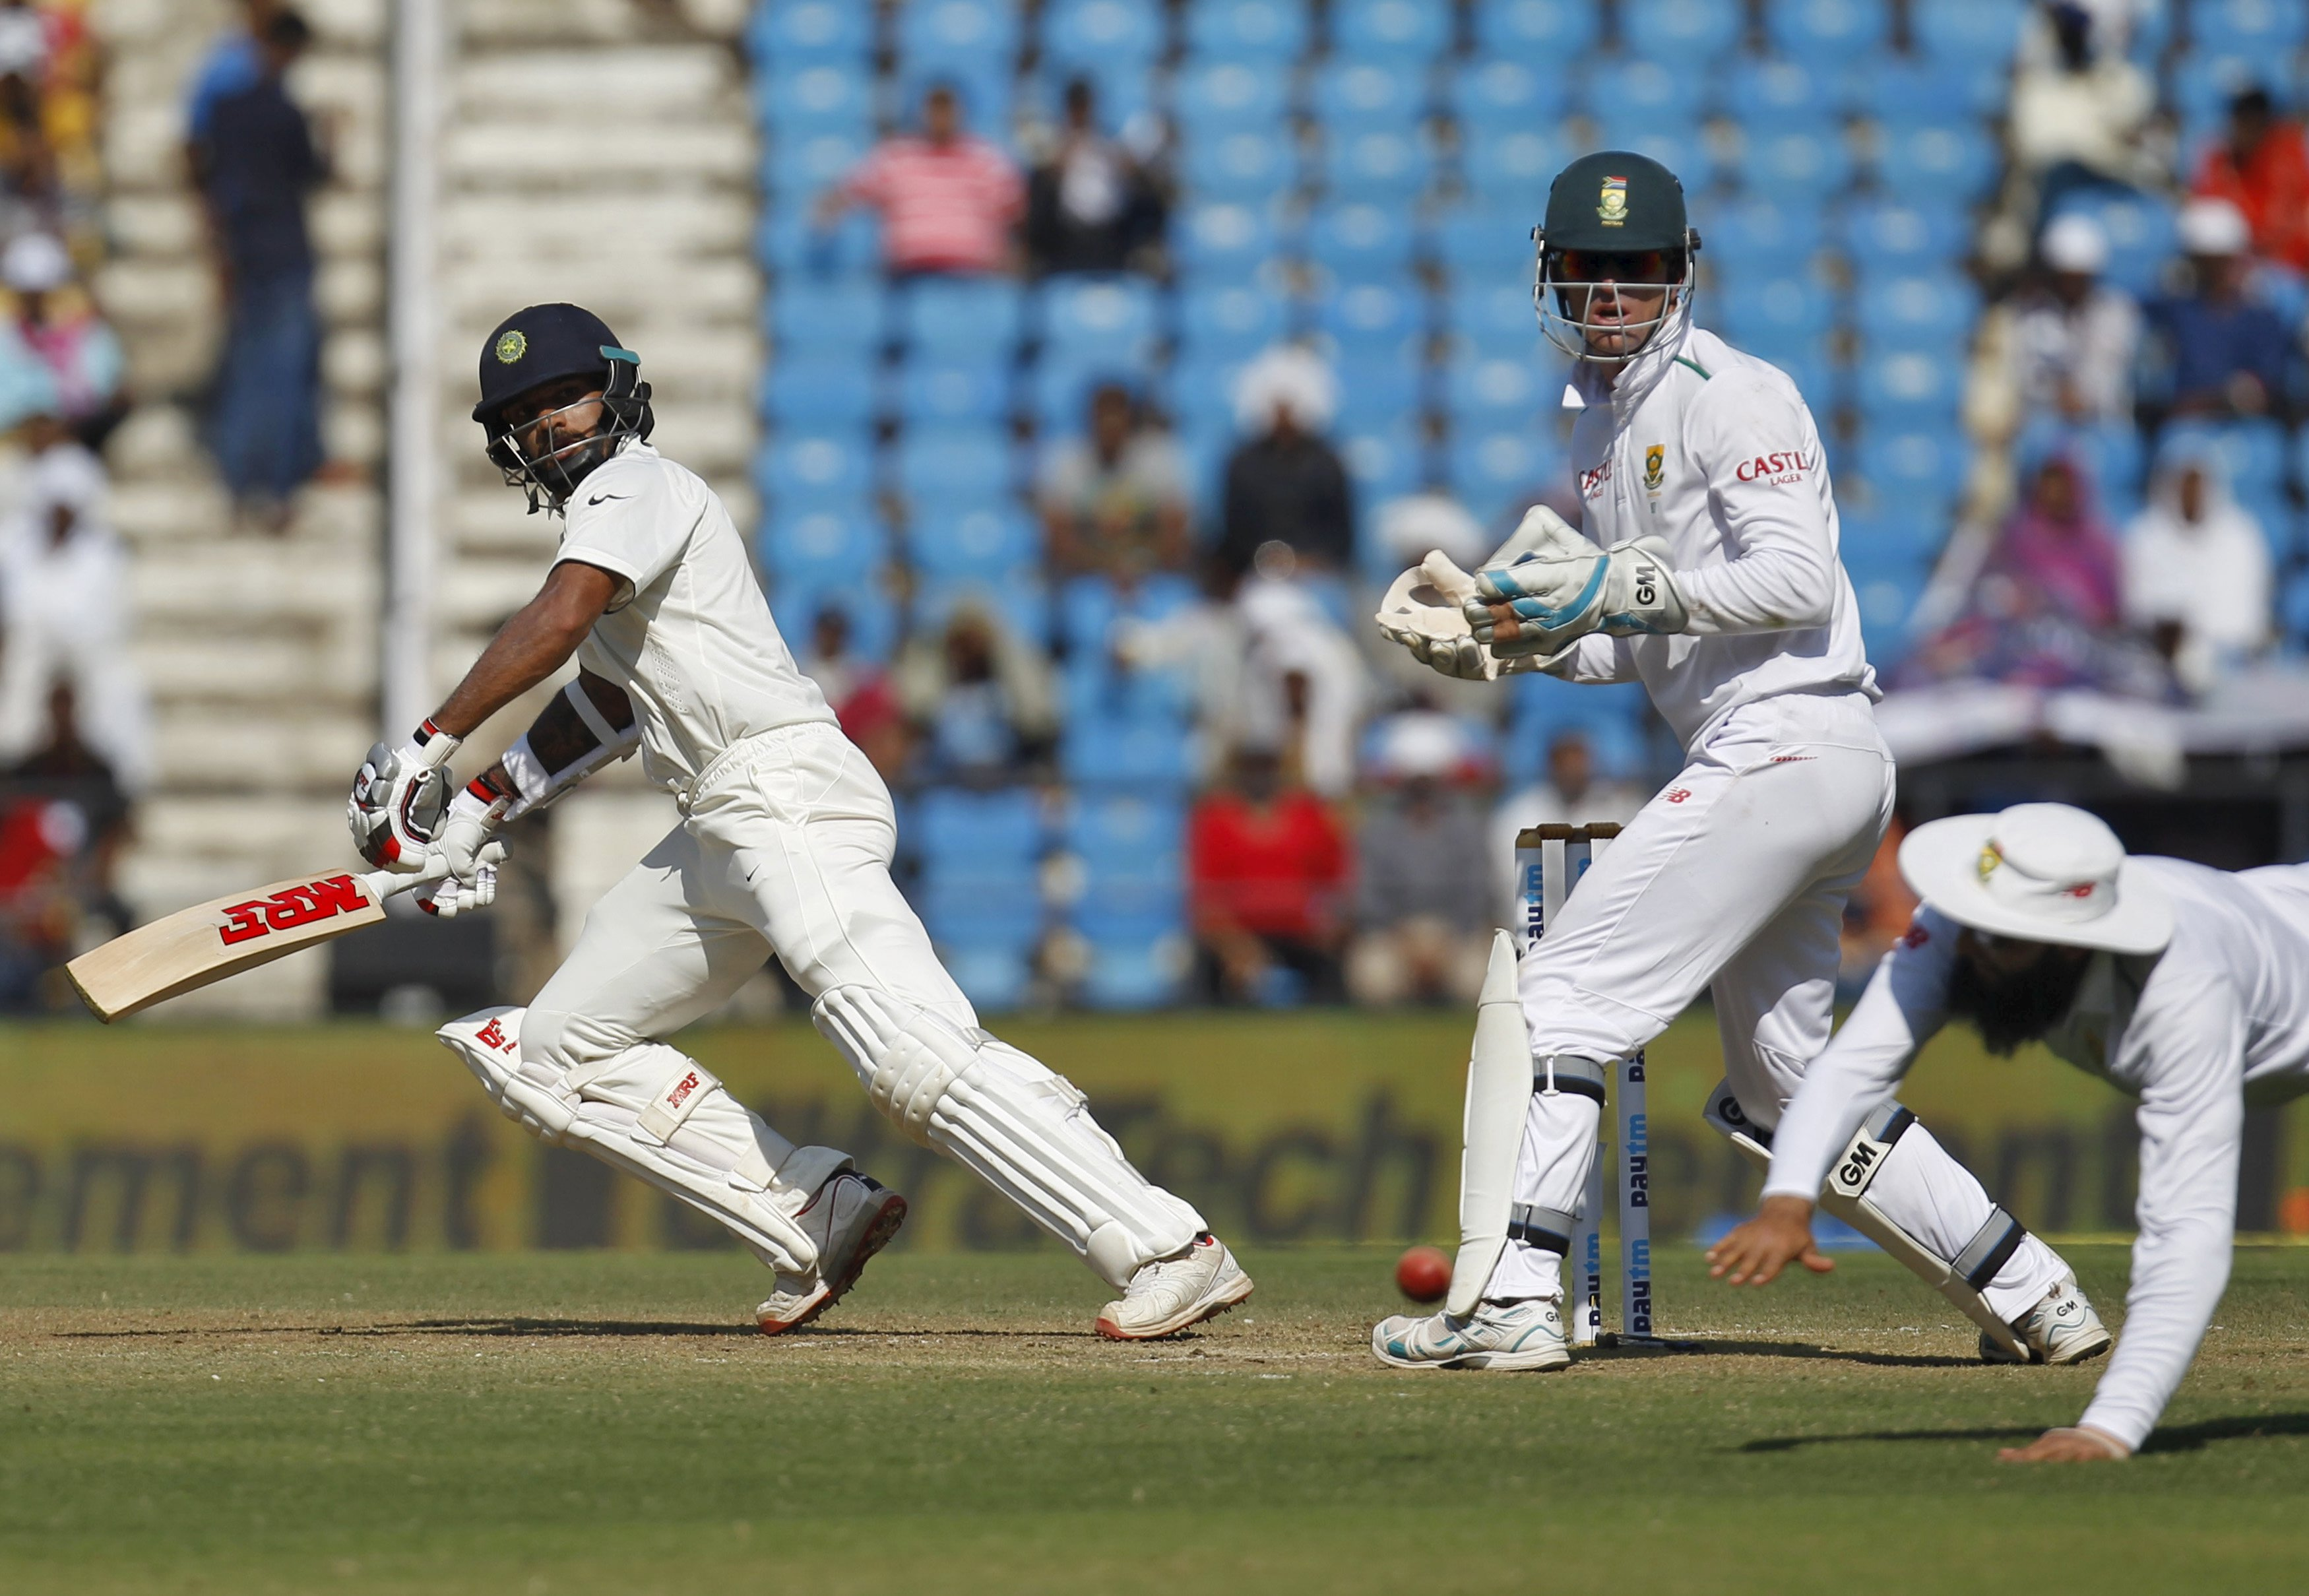 India's Shikhar Dhawan (left) plays a shot as South Africa's captain Hashim Amla dives unsuccessfully to stop the ball watched by wicketkeeper Dane Vilas during the second day of their third test cricket match in Nagpur, India, November 26, 2015. Photo: Reuters